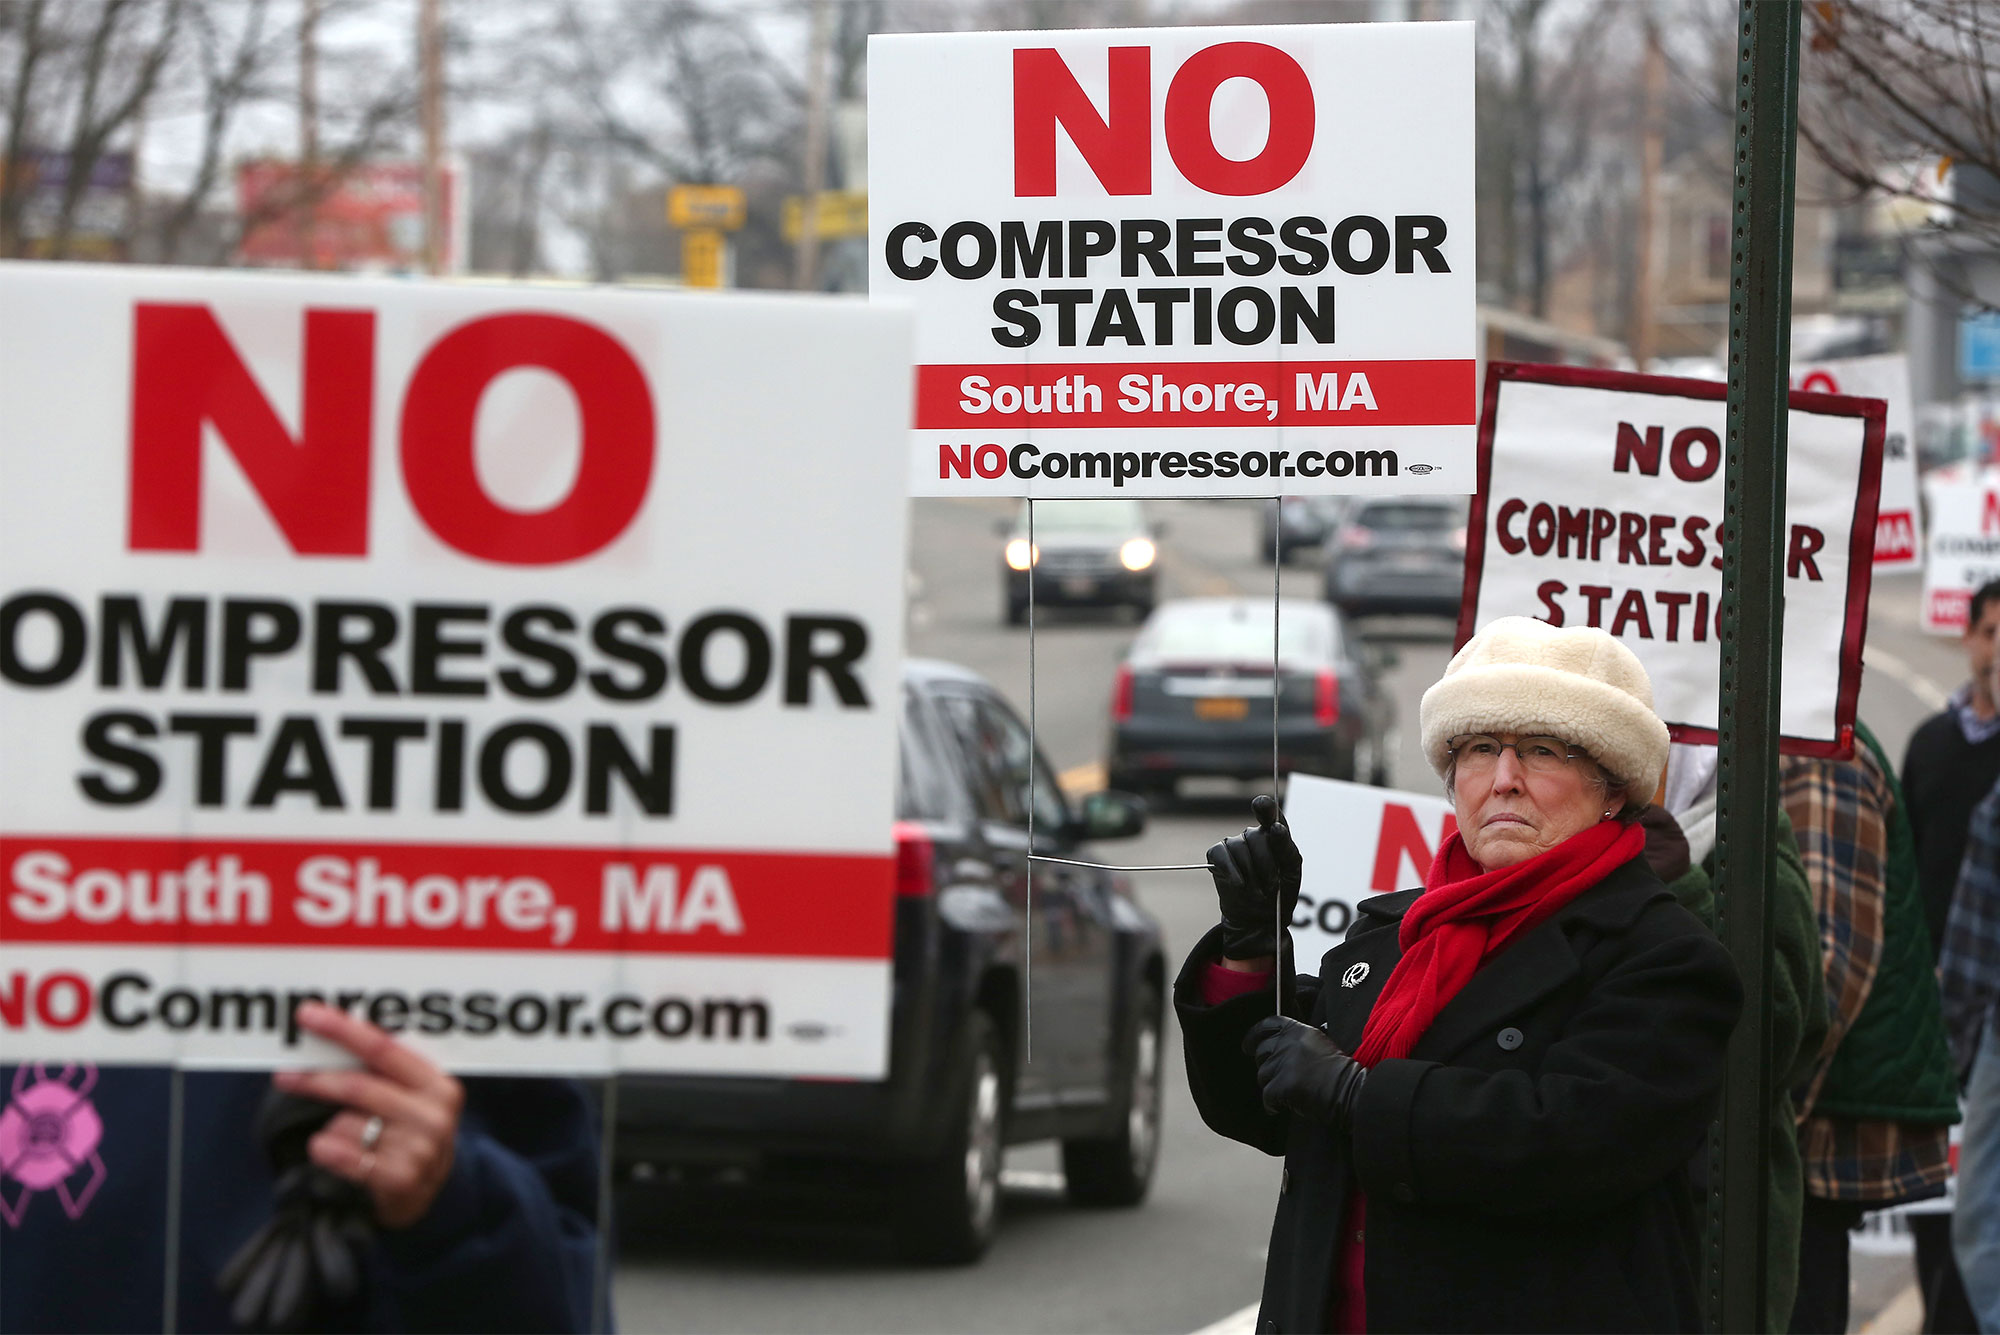 People hold signs protesting a proposed natural gas compressor station in Weymouth, Massachusetts.